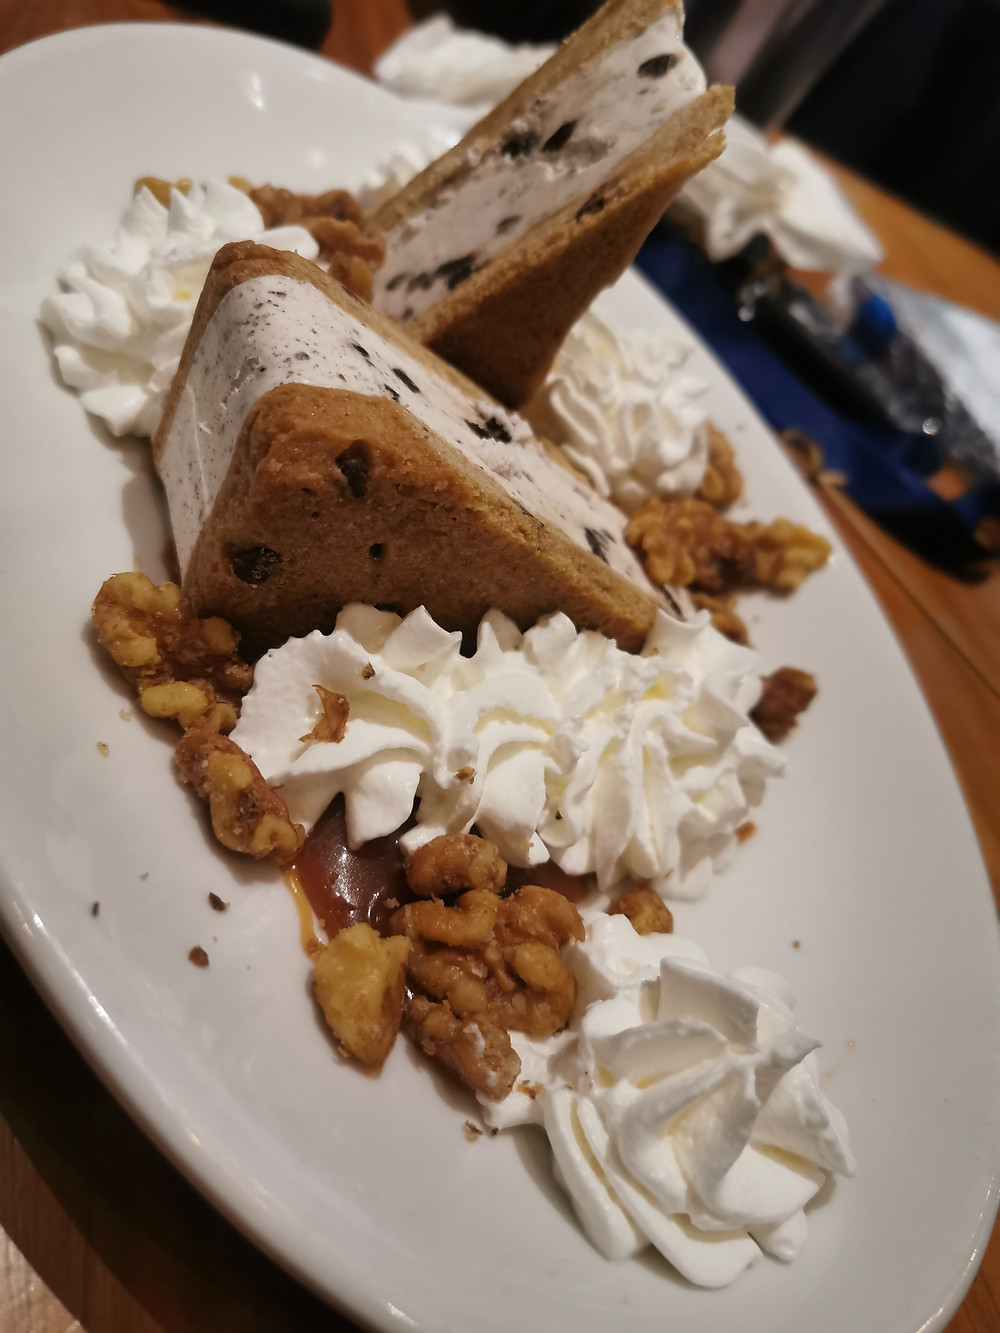 A chocolate cookie ice cream sandwich in pie slice form